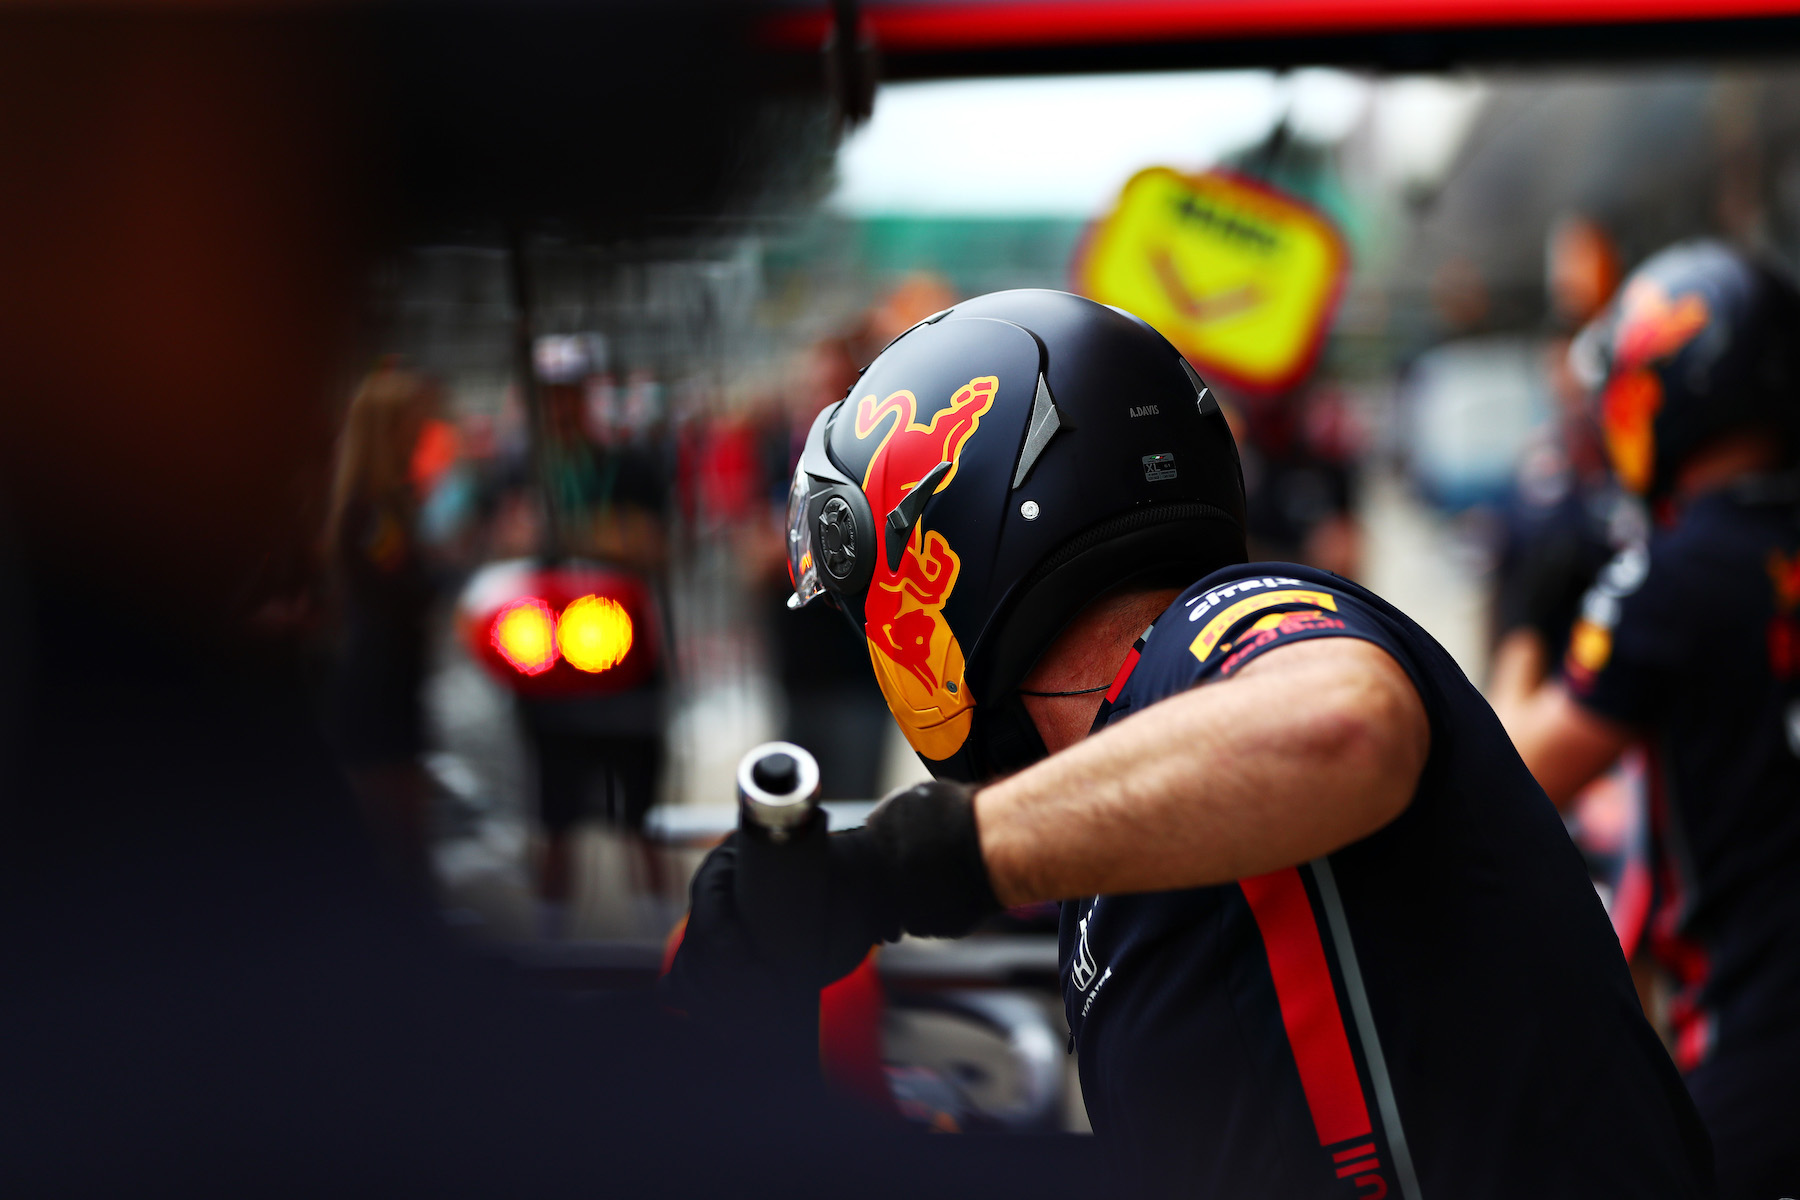 1 2019 British Grand Prix Thrusday 2.jpg